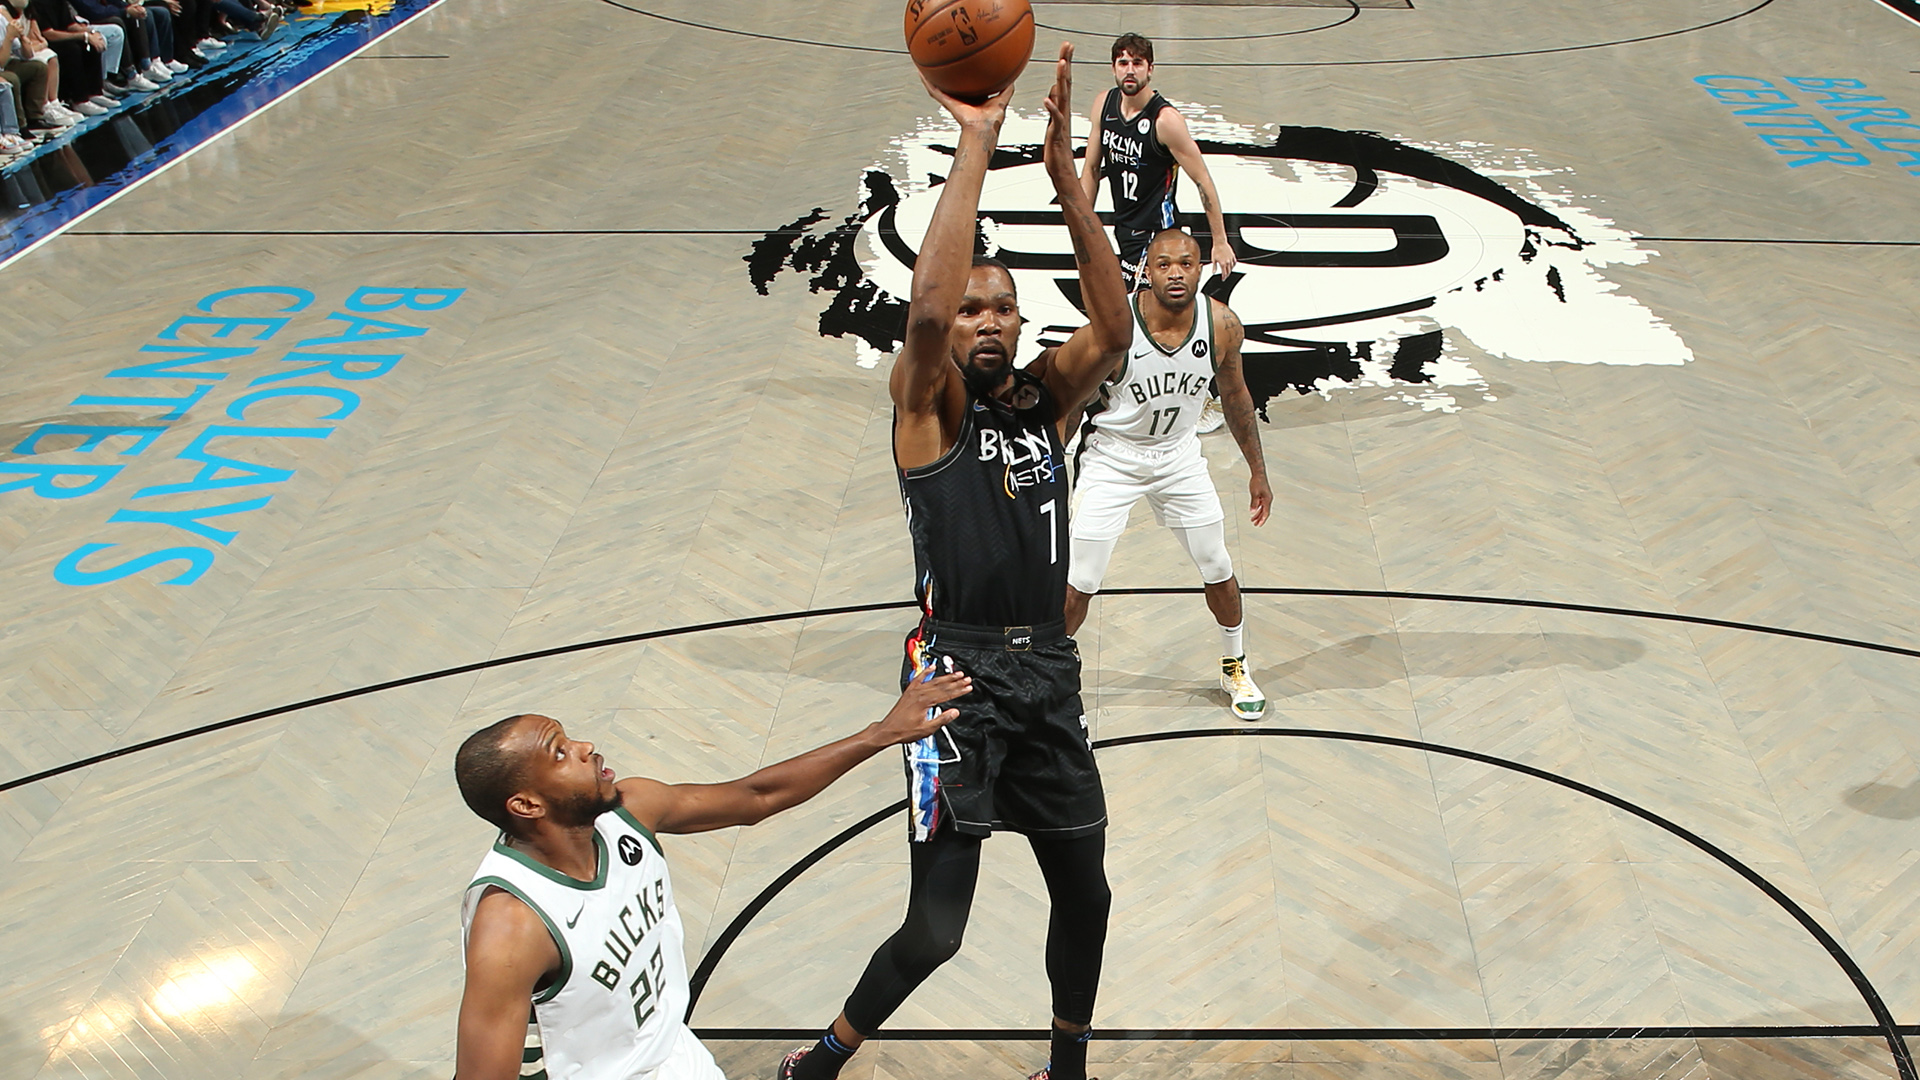 Inside the NBA: Durant puts on performance for the ages, sinks Bucks